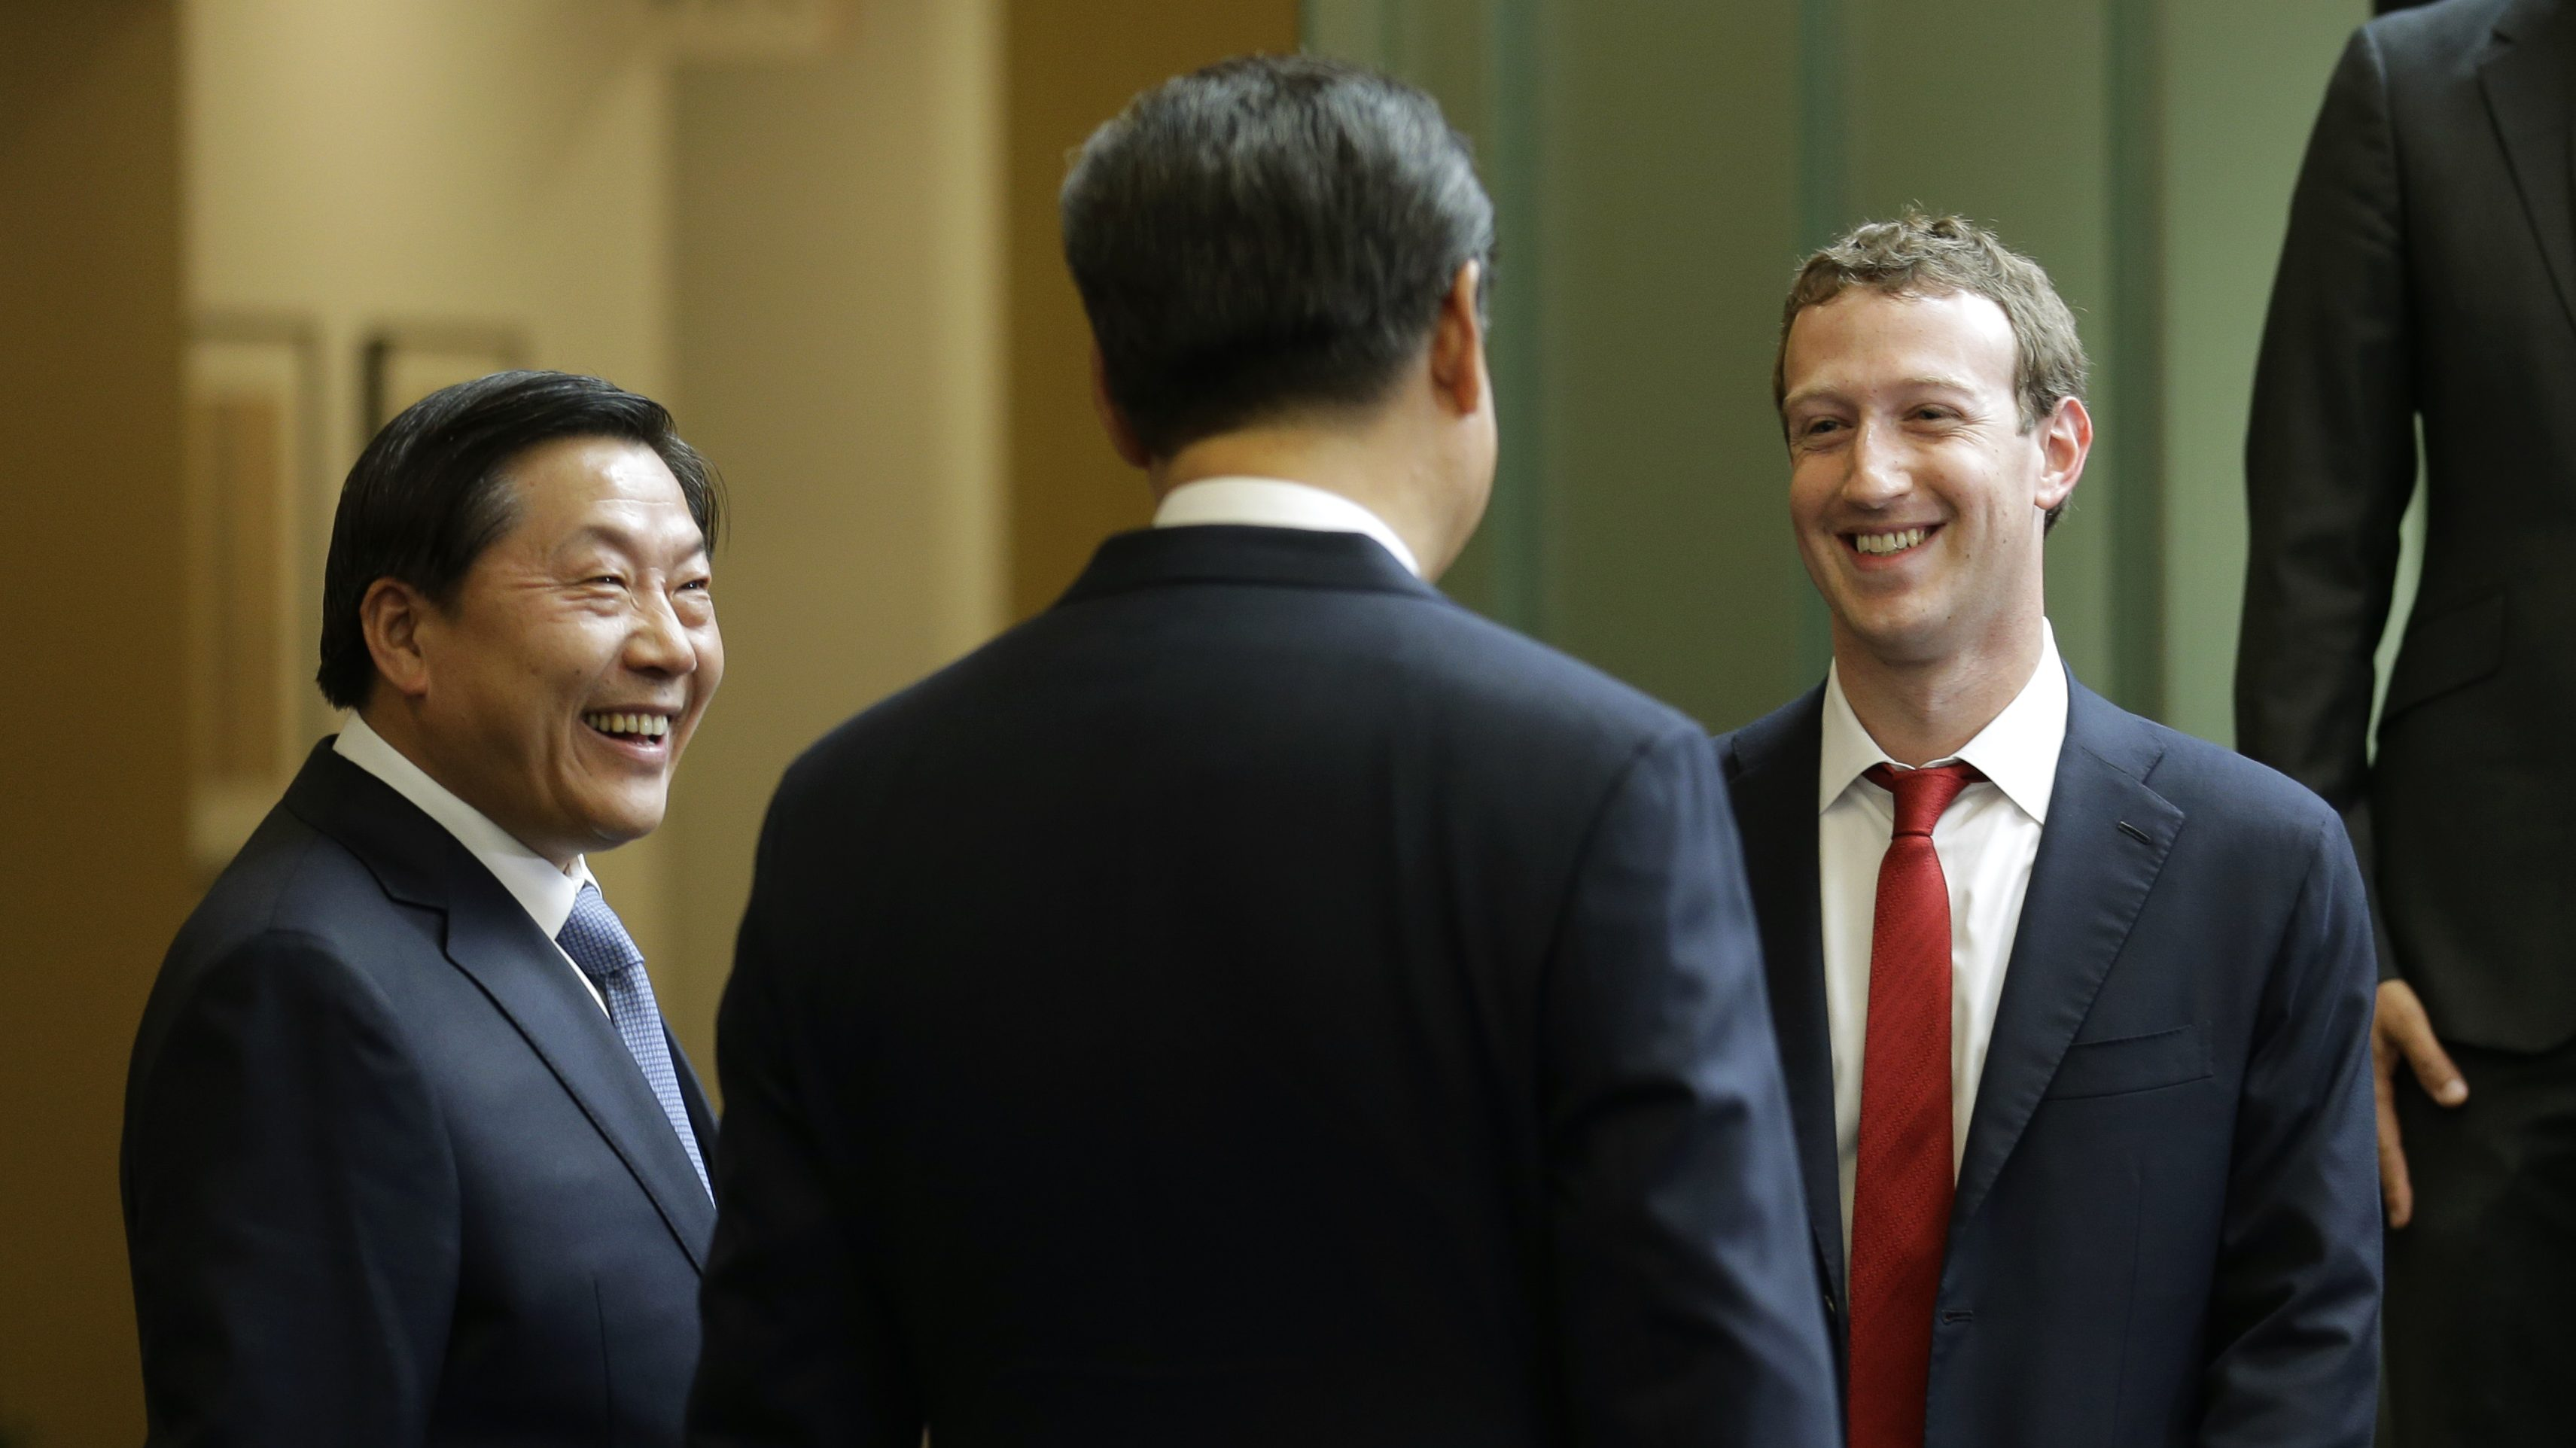 Chinese President Xi Jinping, center, talks with Facebook Chief Executive Mark Zuckerberg, right, as Lu Wei, left, China's Internet czar, looks on during a gathering of CEOs and other executives at Microsoft's main campus in Redmond, Wash., Wednesday, Sept. 23, 2015. (AP Photo/Ted S. Warren, Pool)